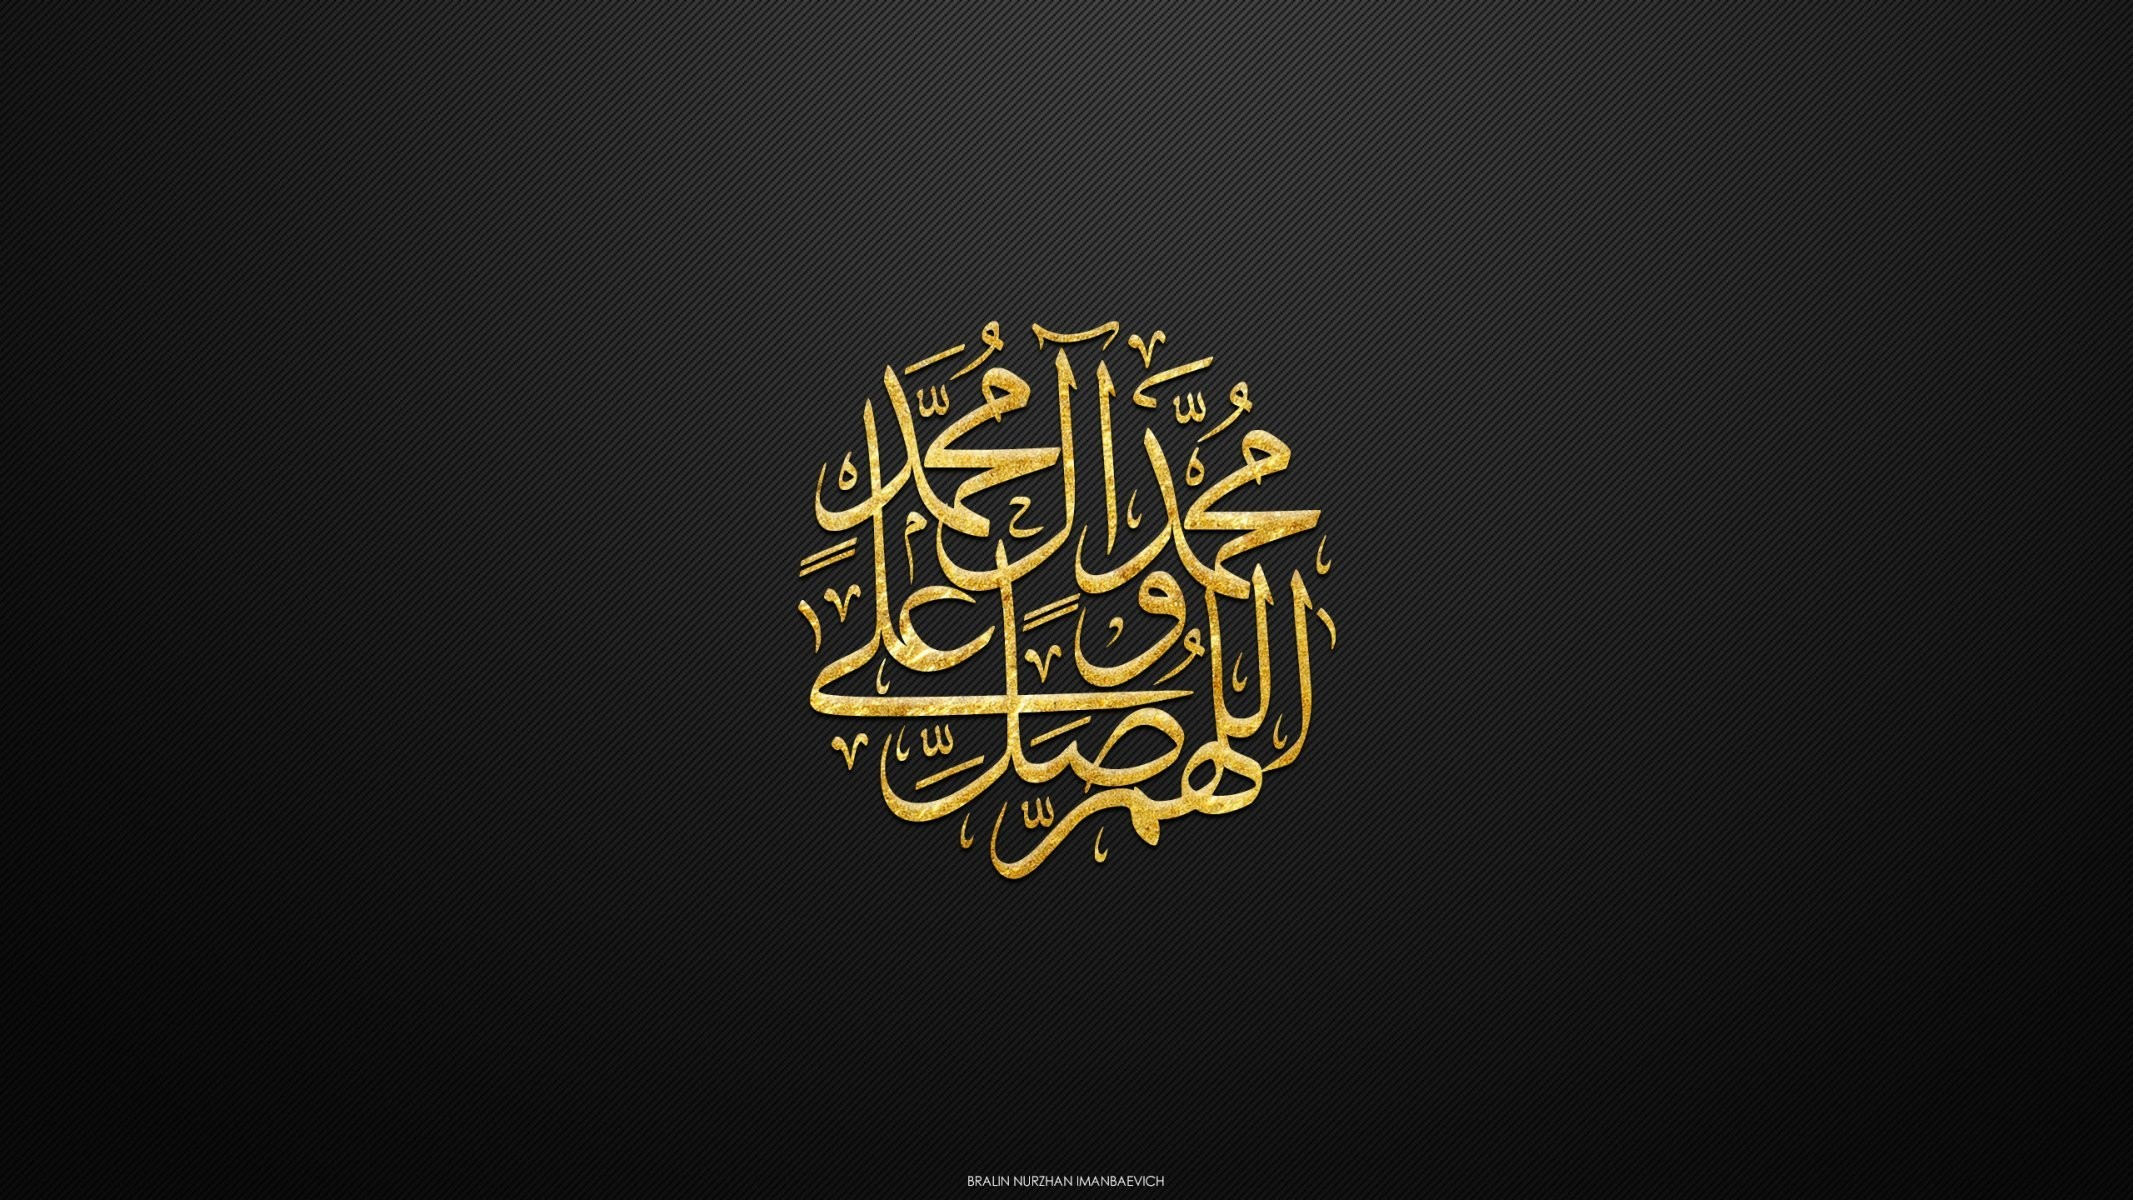 Hp Laptop Hd Quran Quotes Wallpapers Black And Gold Wallpaper 183 ① Download Free Cool Full Hd